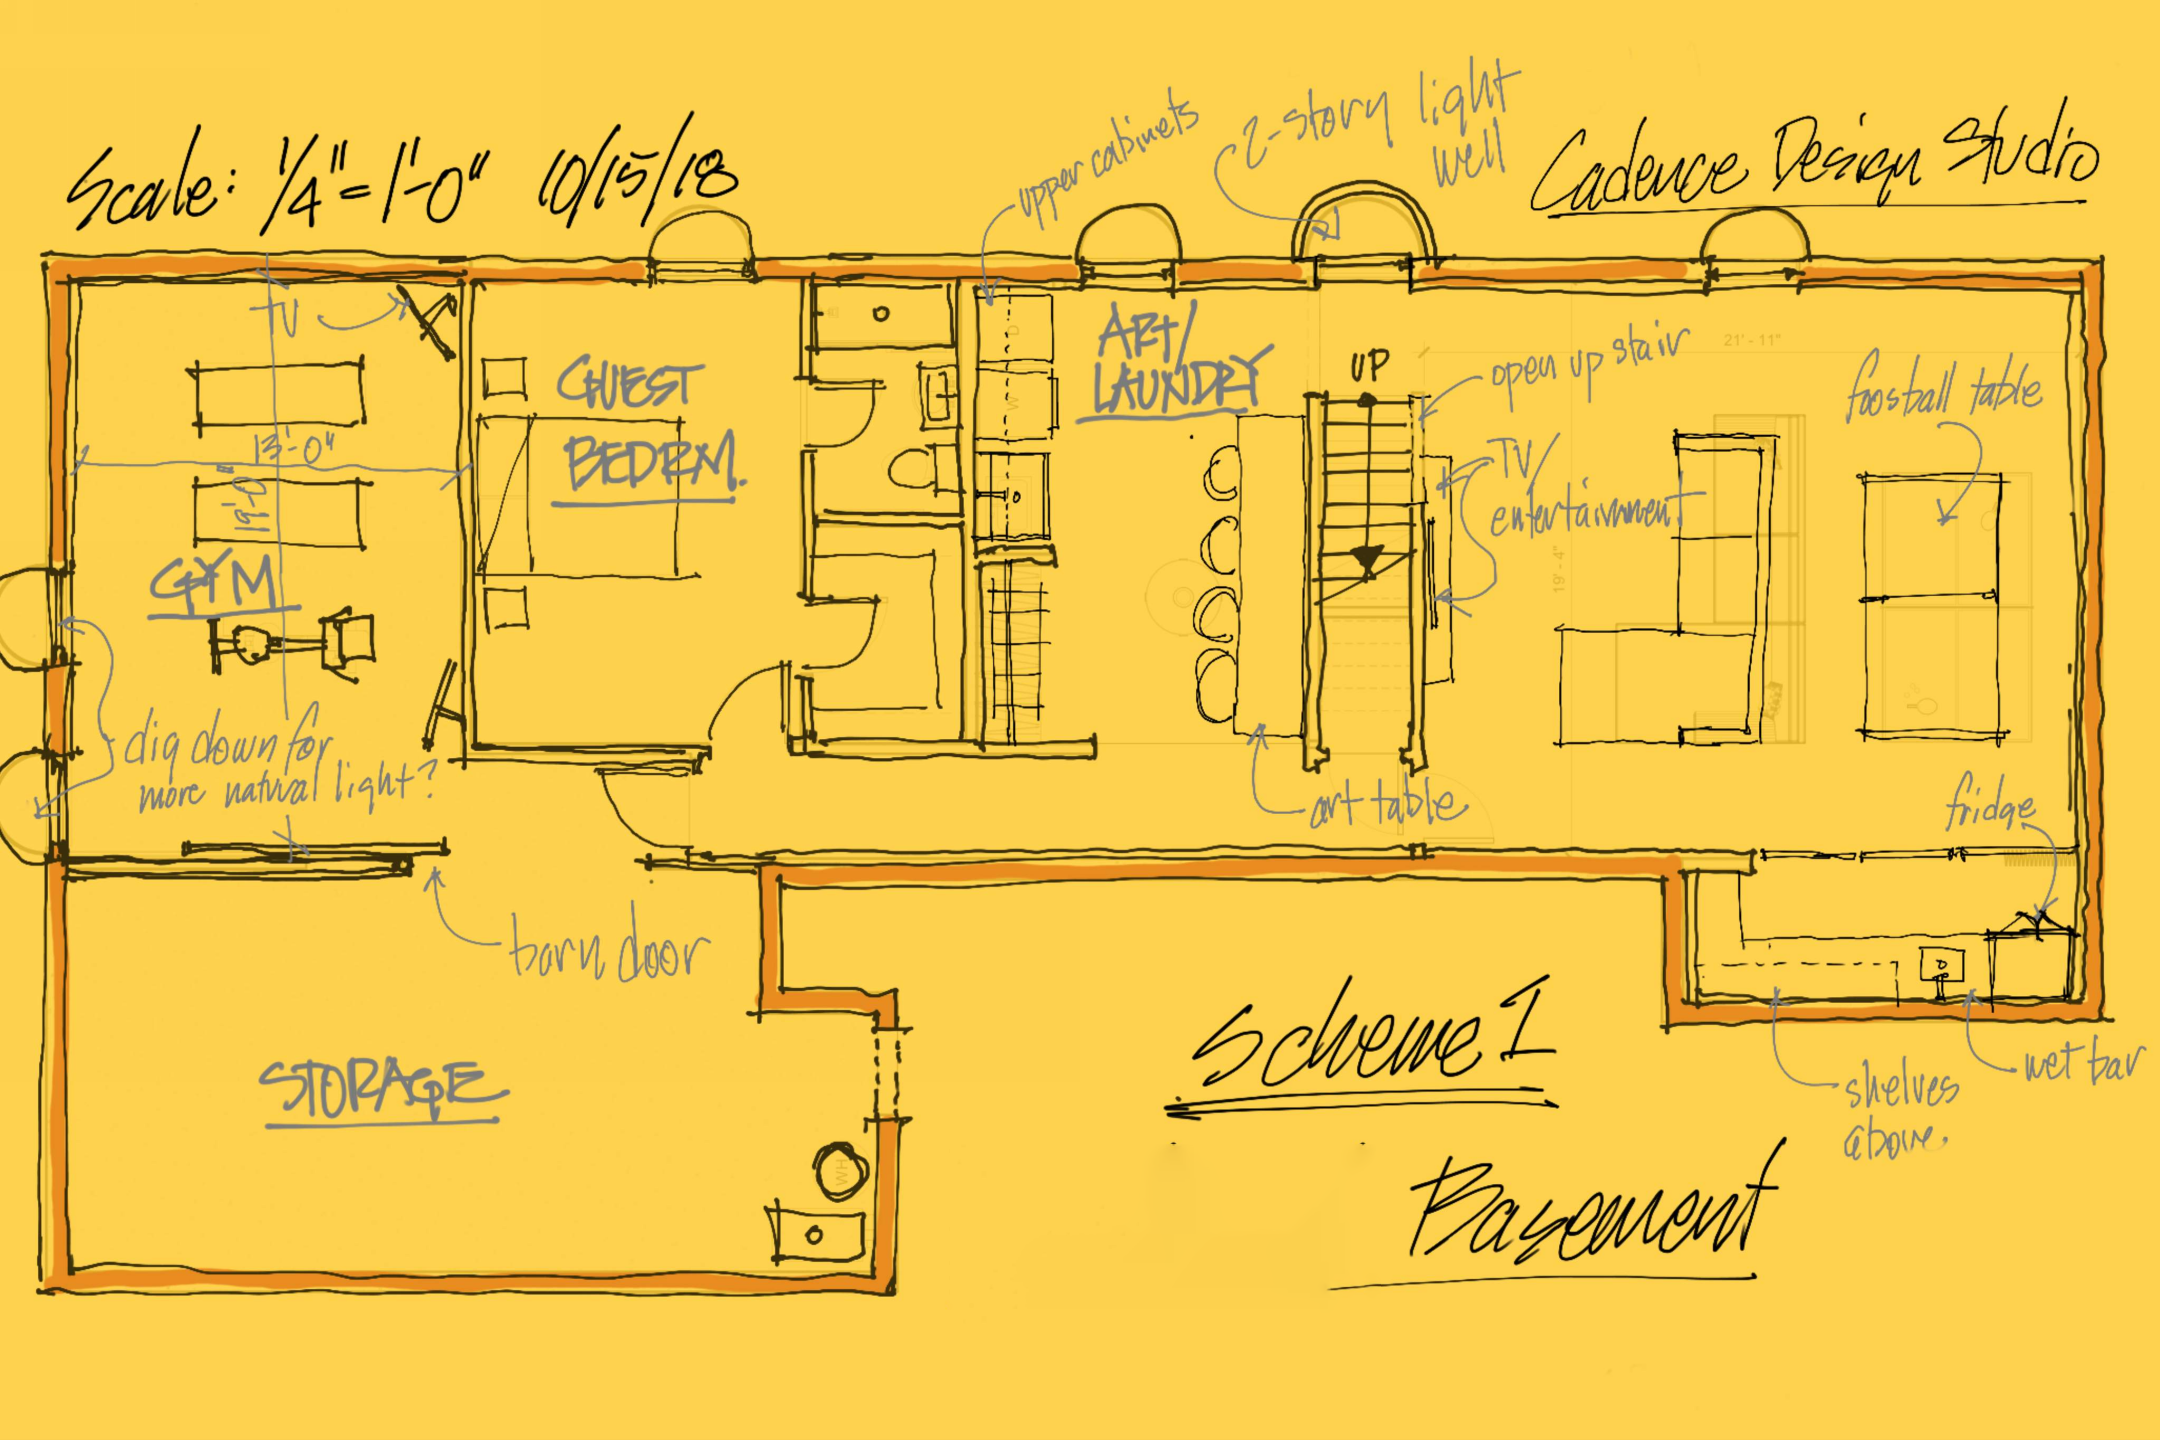 Wellshire Schematic Design Plan Sketch Basement.png